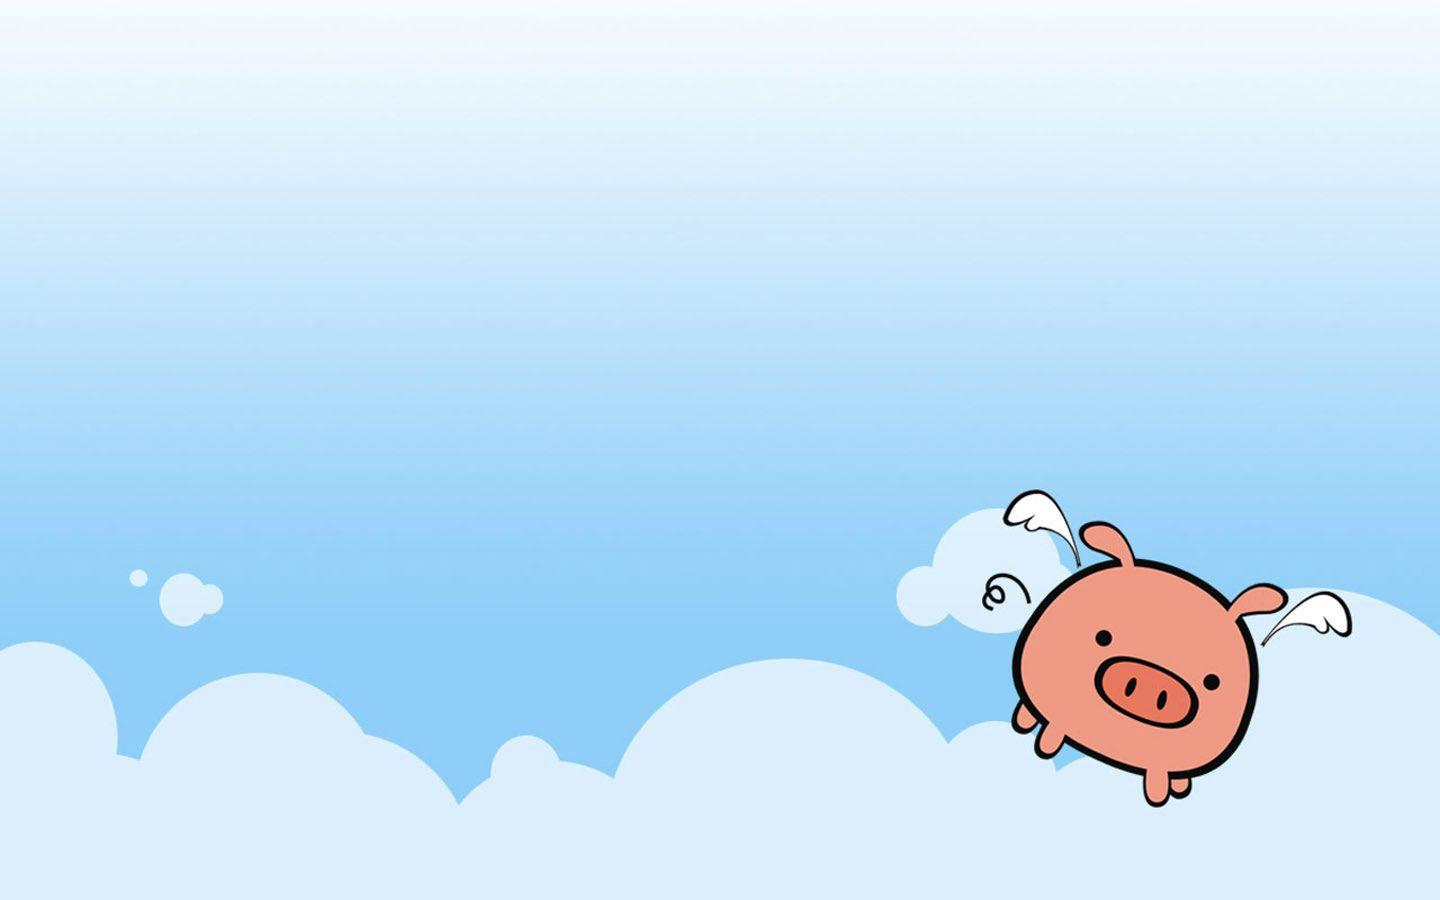 Cute Pig Wallpapers - Wallpaper Cave